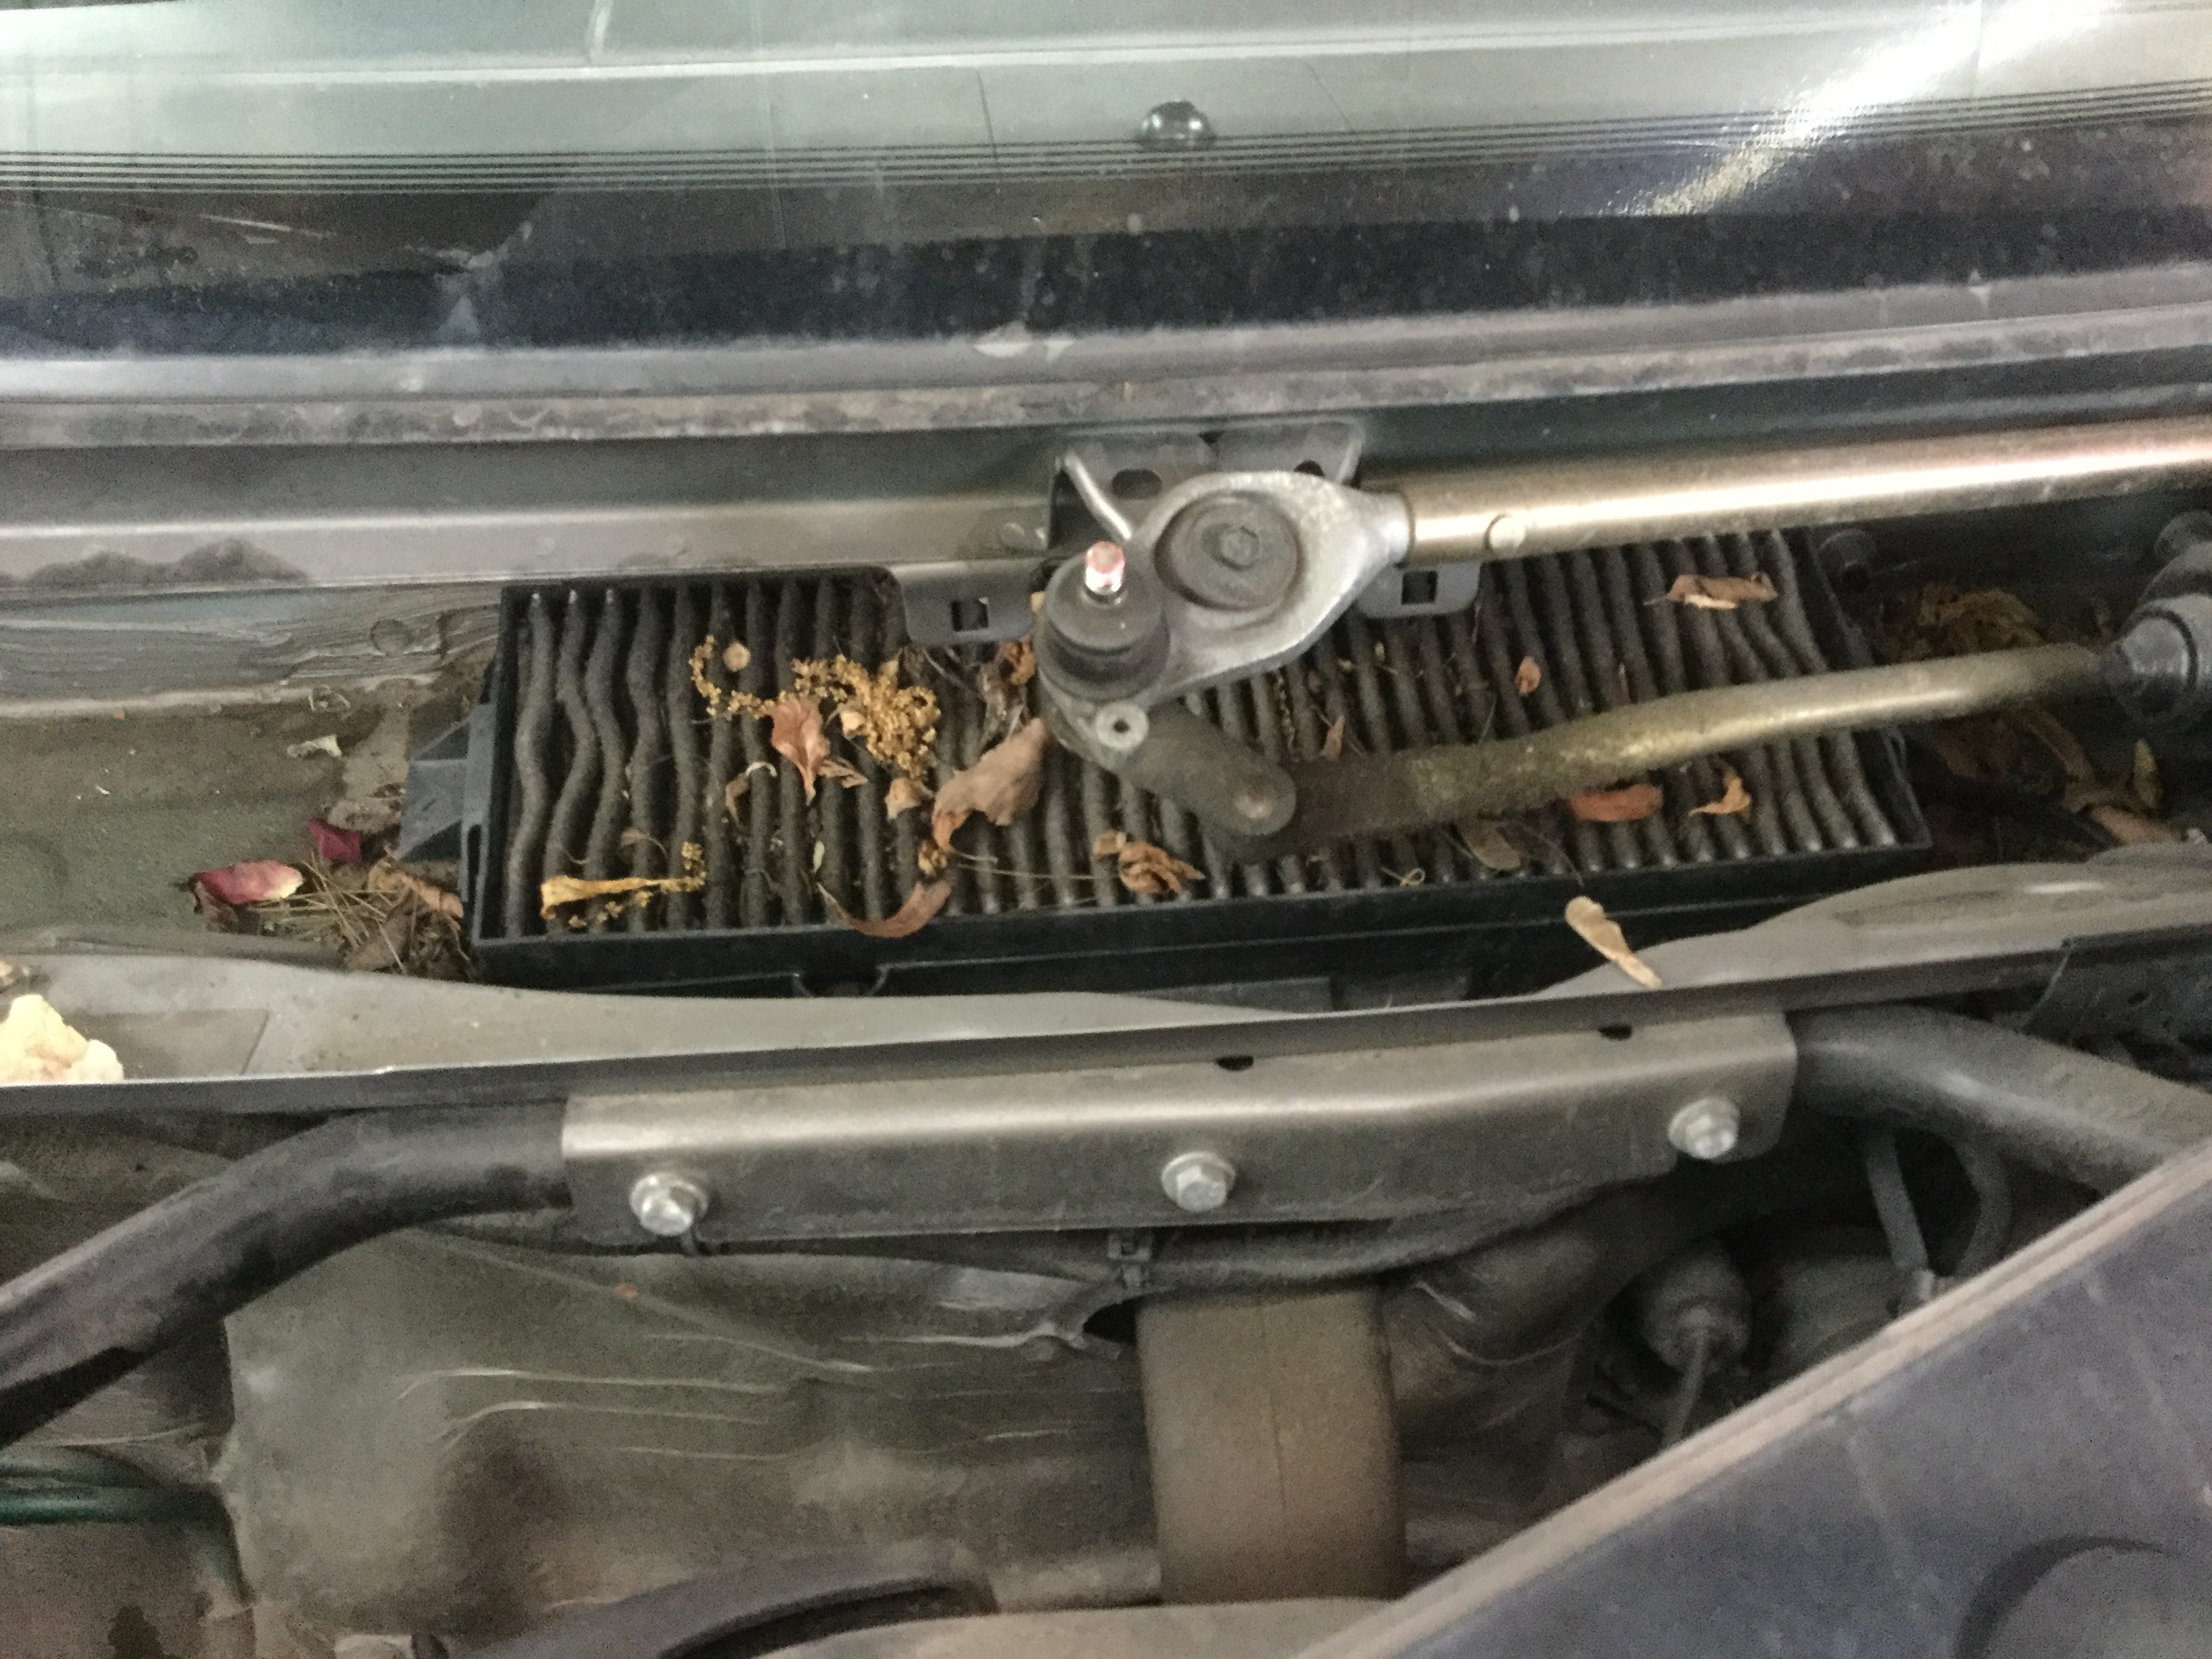 Where Is The Cabin Filter In A 2002 Saab 9-3 ? | Joe Boulay